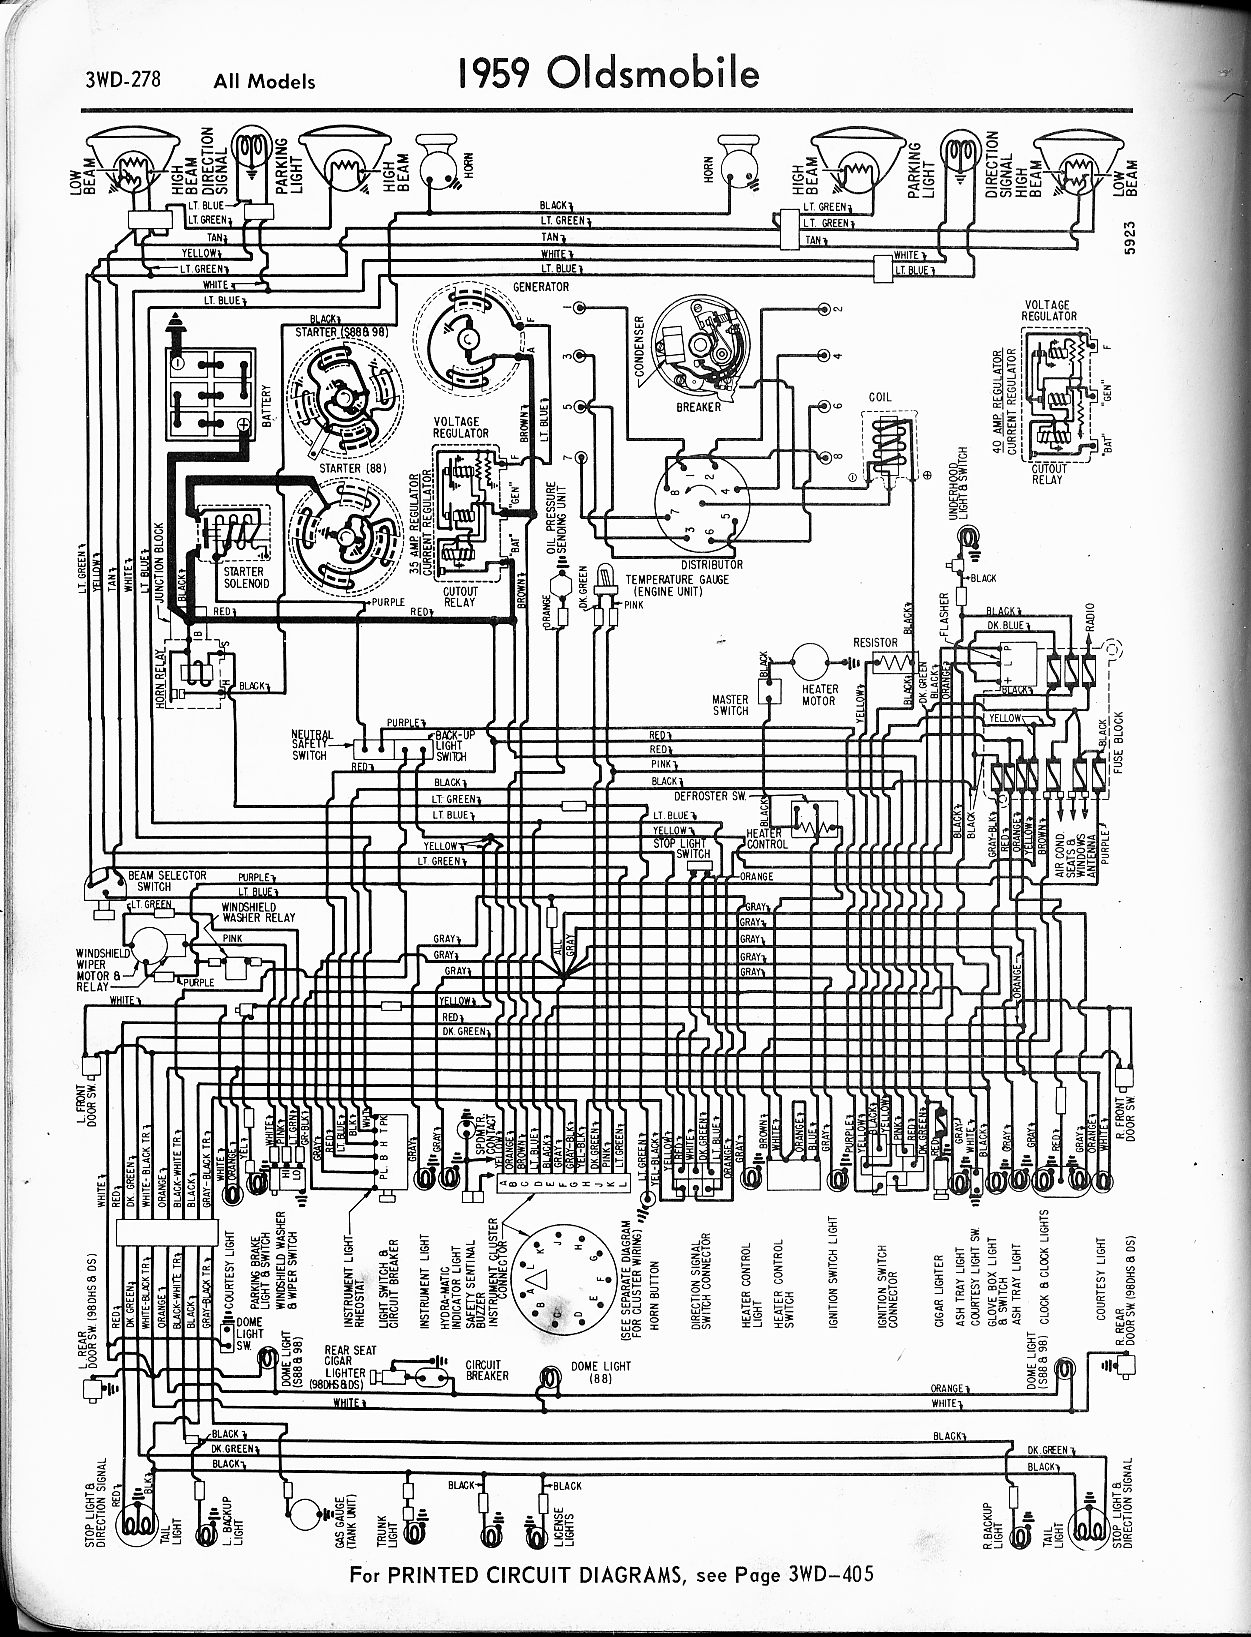 5B8F19 Oldsmobile Cutlass Ciera Fuse Box Diagram | Wiring ResourcesWiring Resources